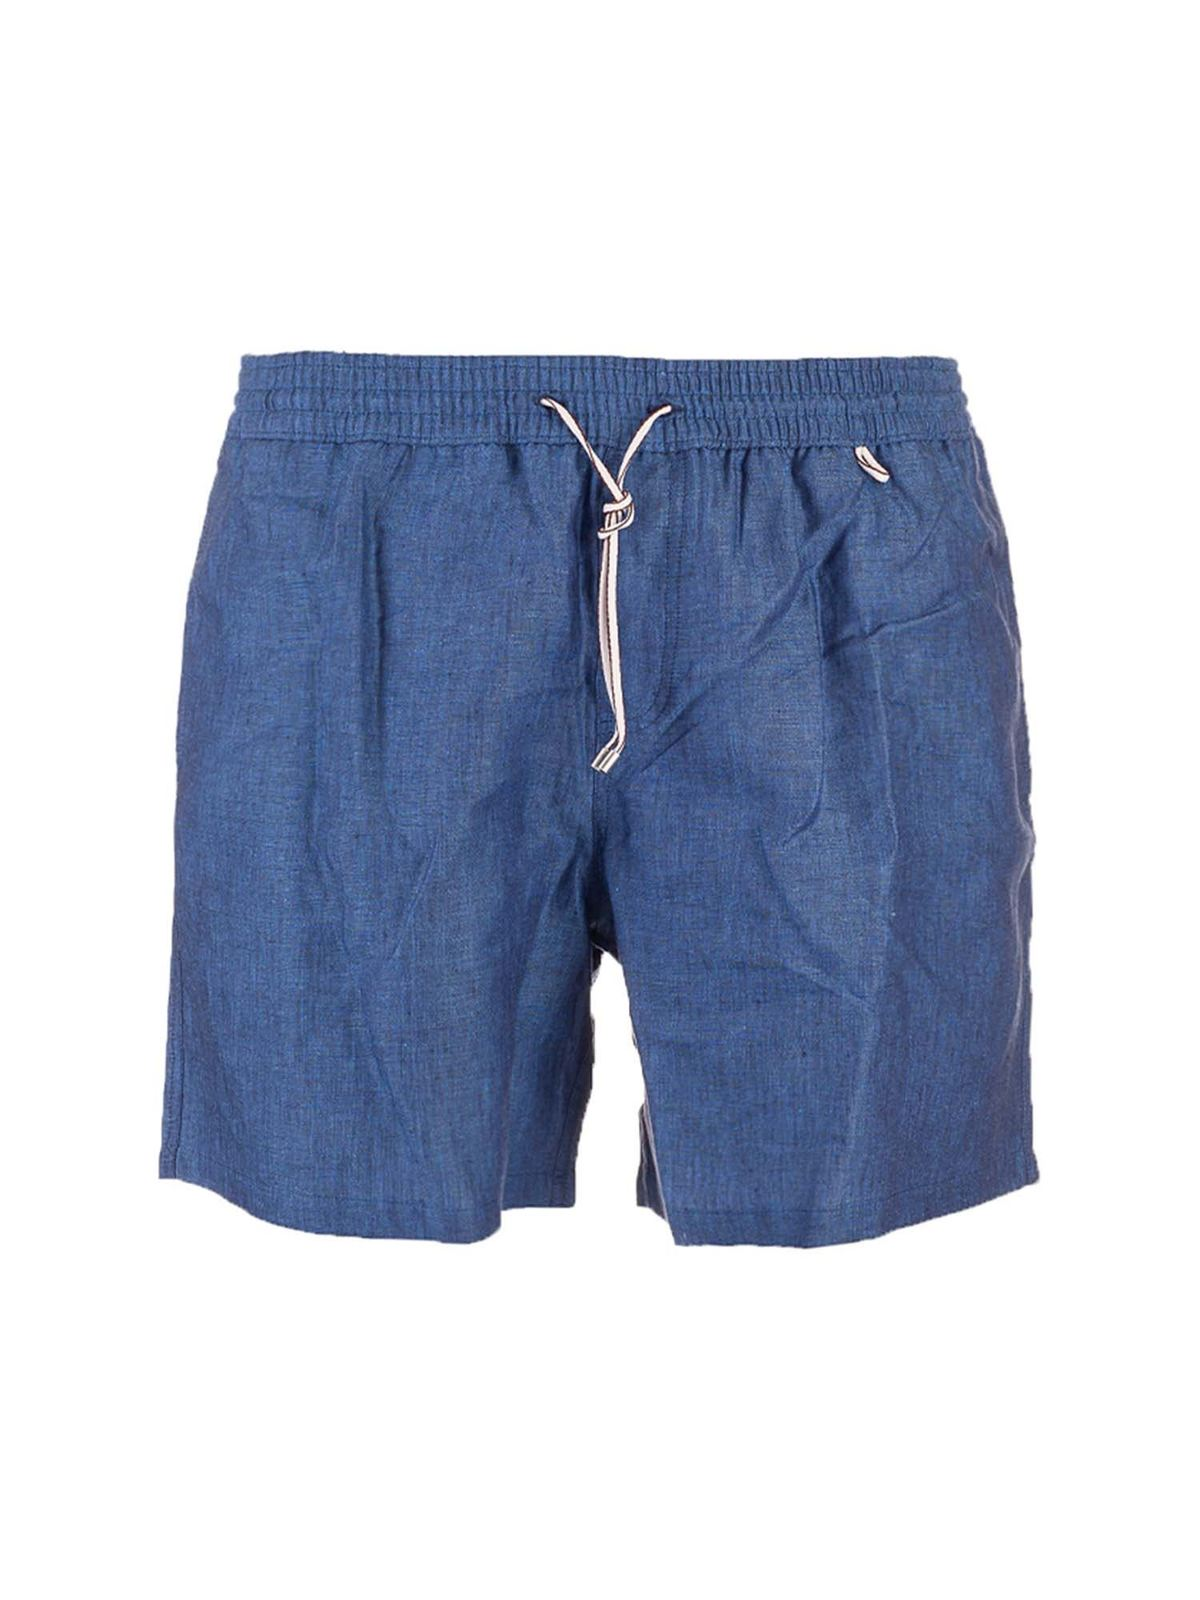 Loro Piana Linens SWIM SHORTS IN SEA SURFACE COLOR